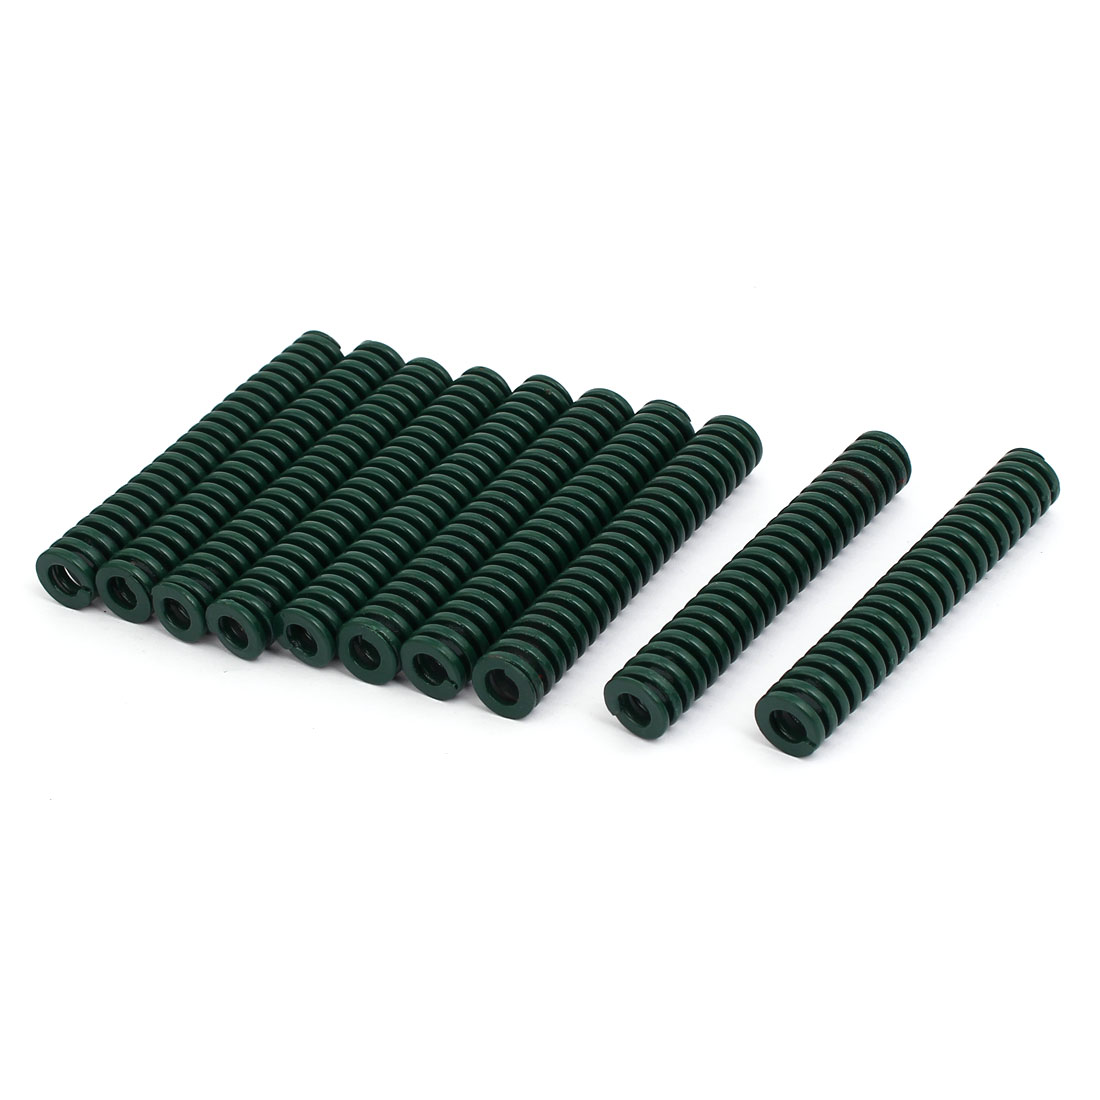 12mm OD 75mm Free Length Heavy Load Compression Mould Die Spring Green 10pcs